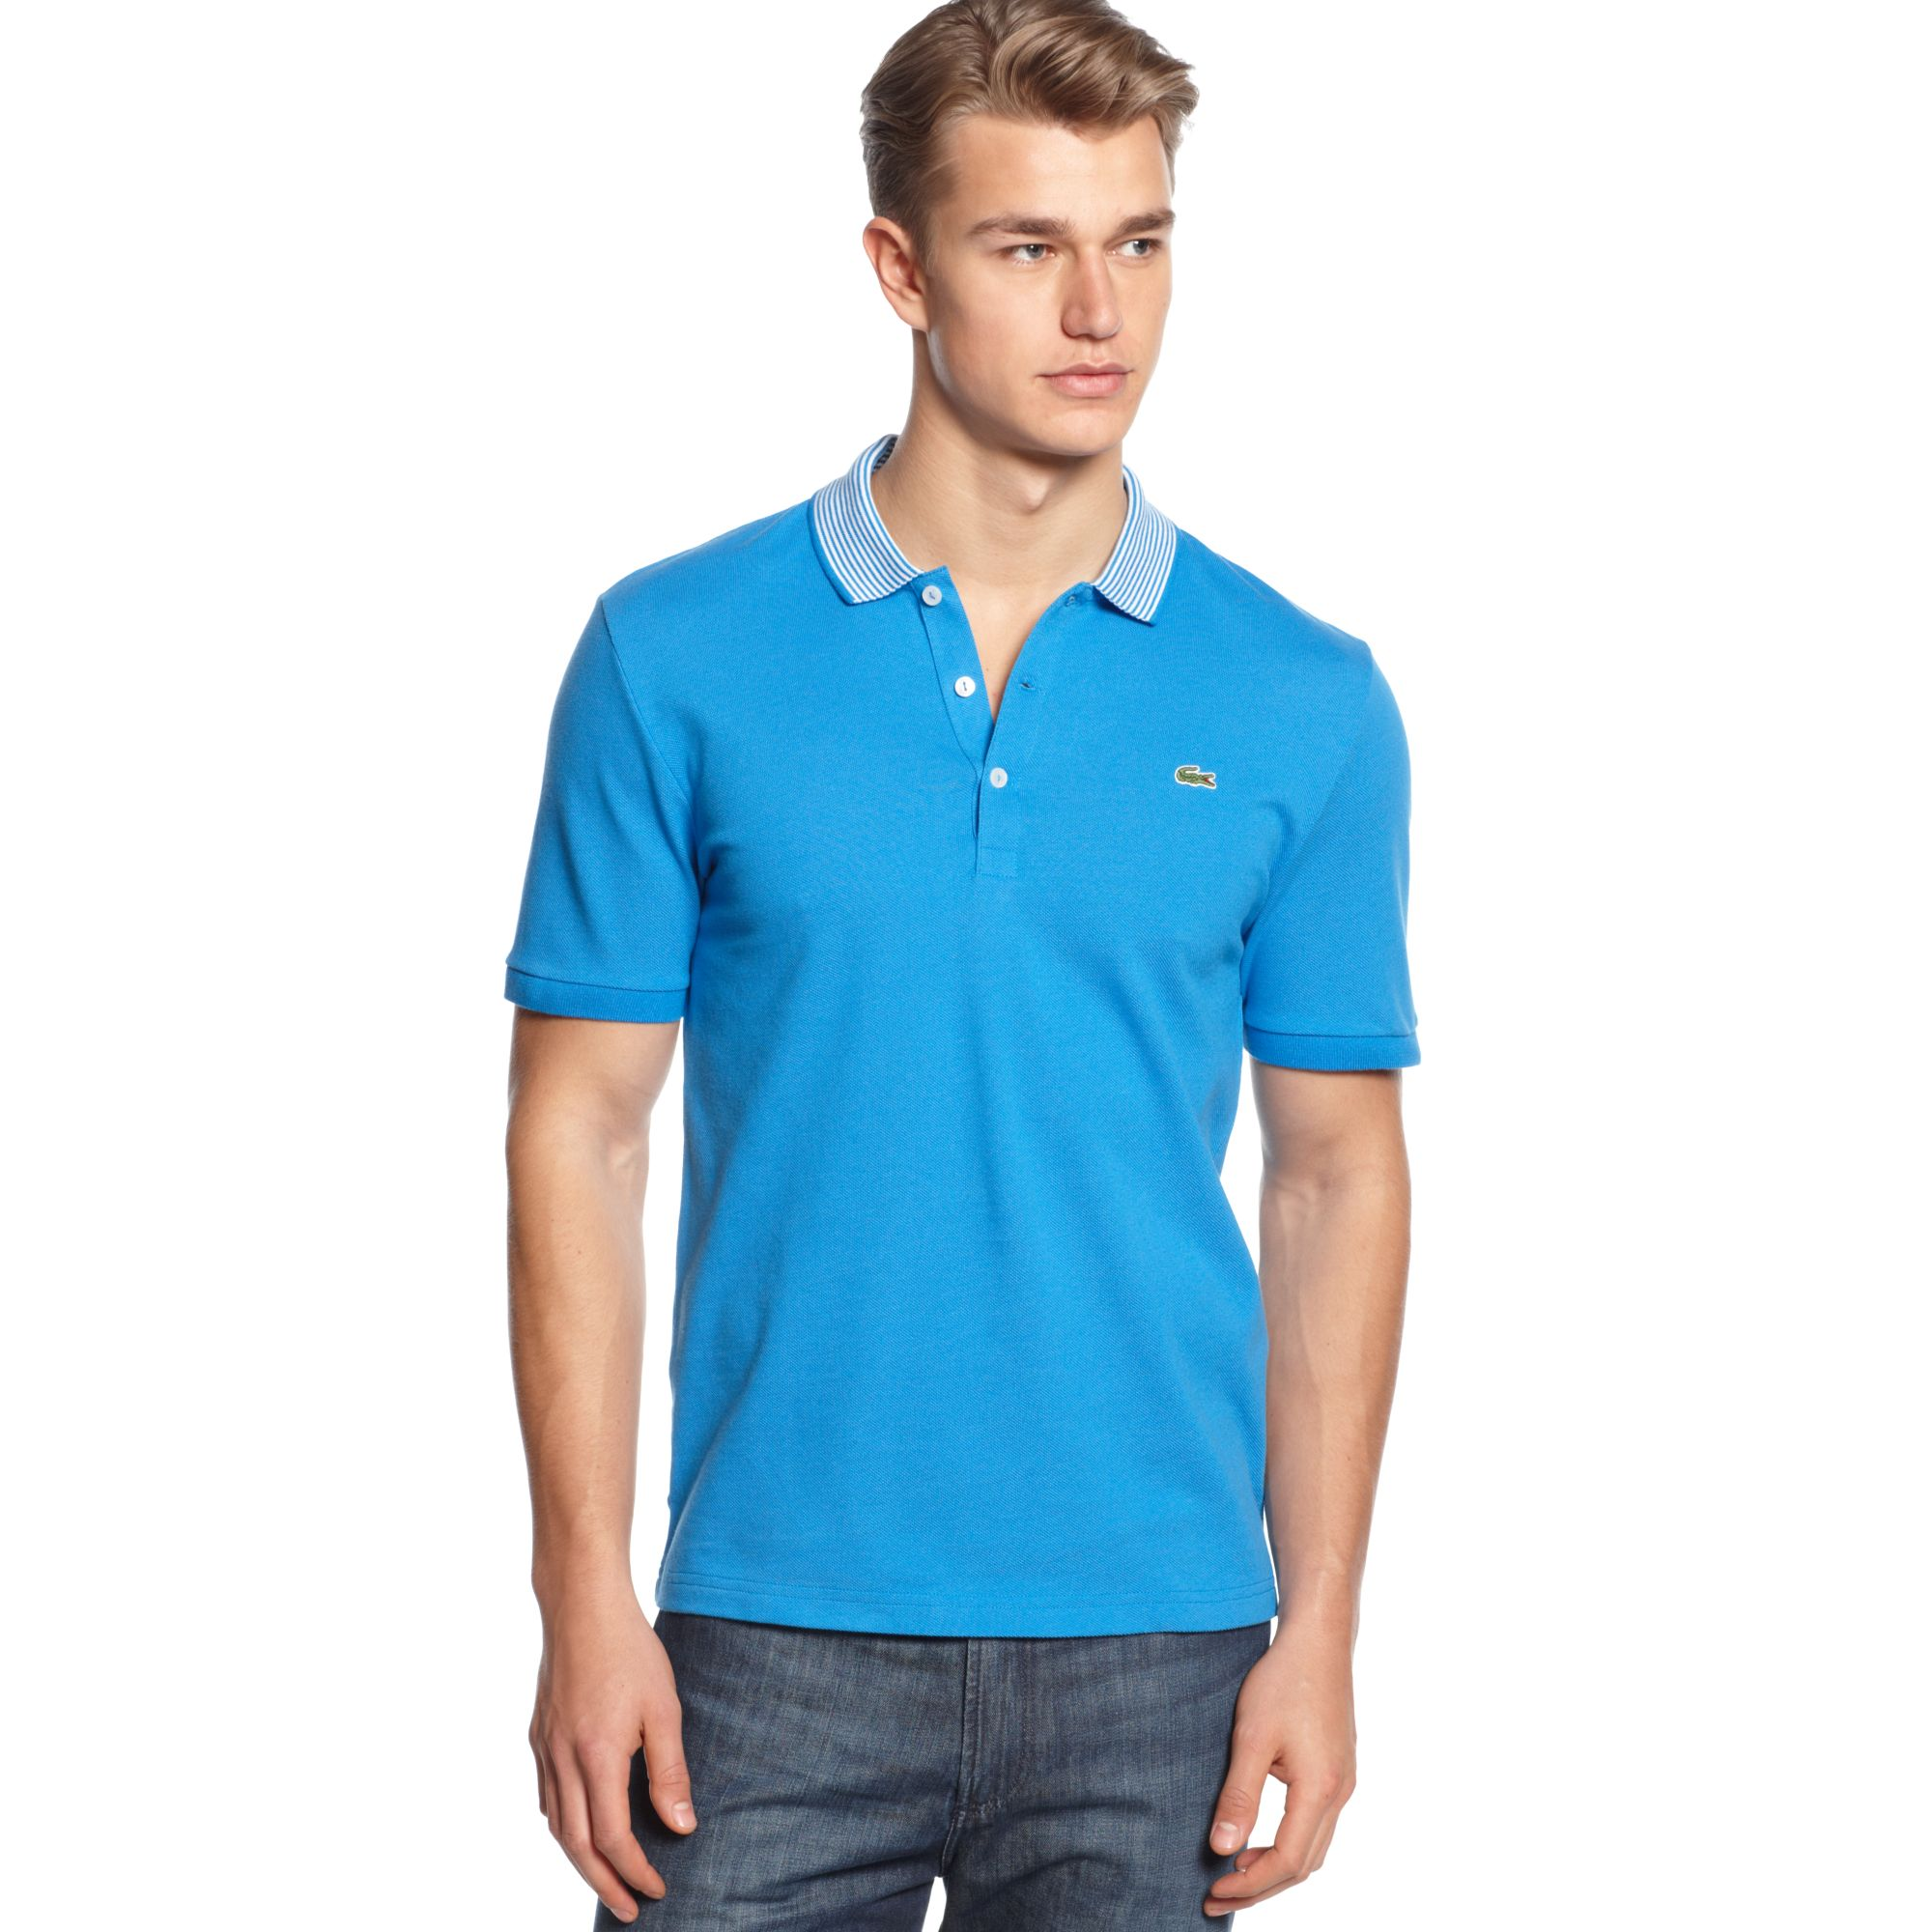 Lacoste short sleeve pique stripe polo shirt in blue for for Lacoste stripe pique polo shirt